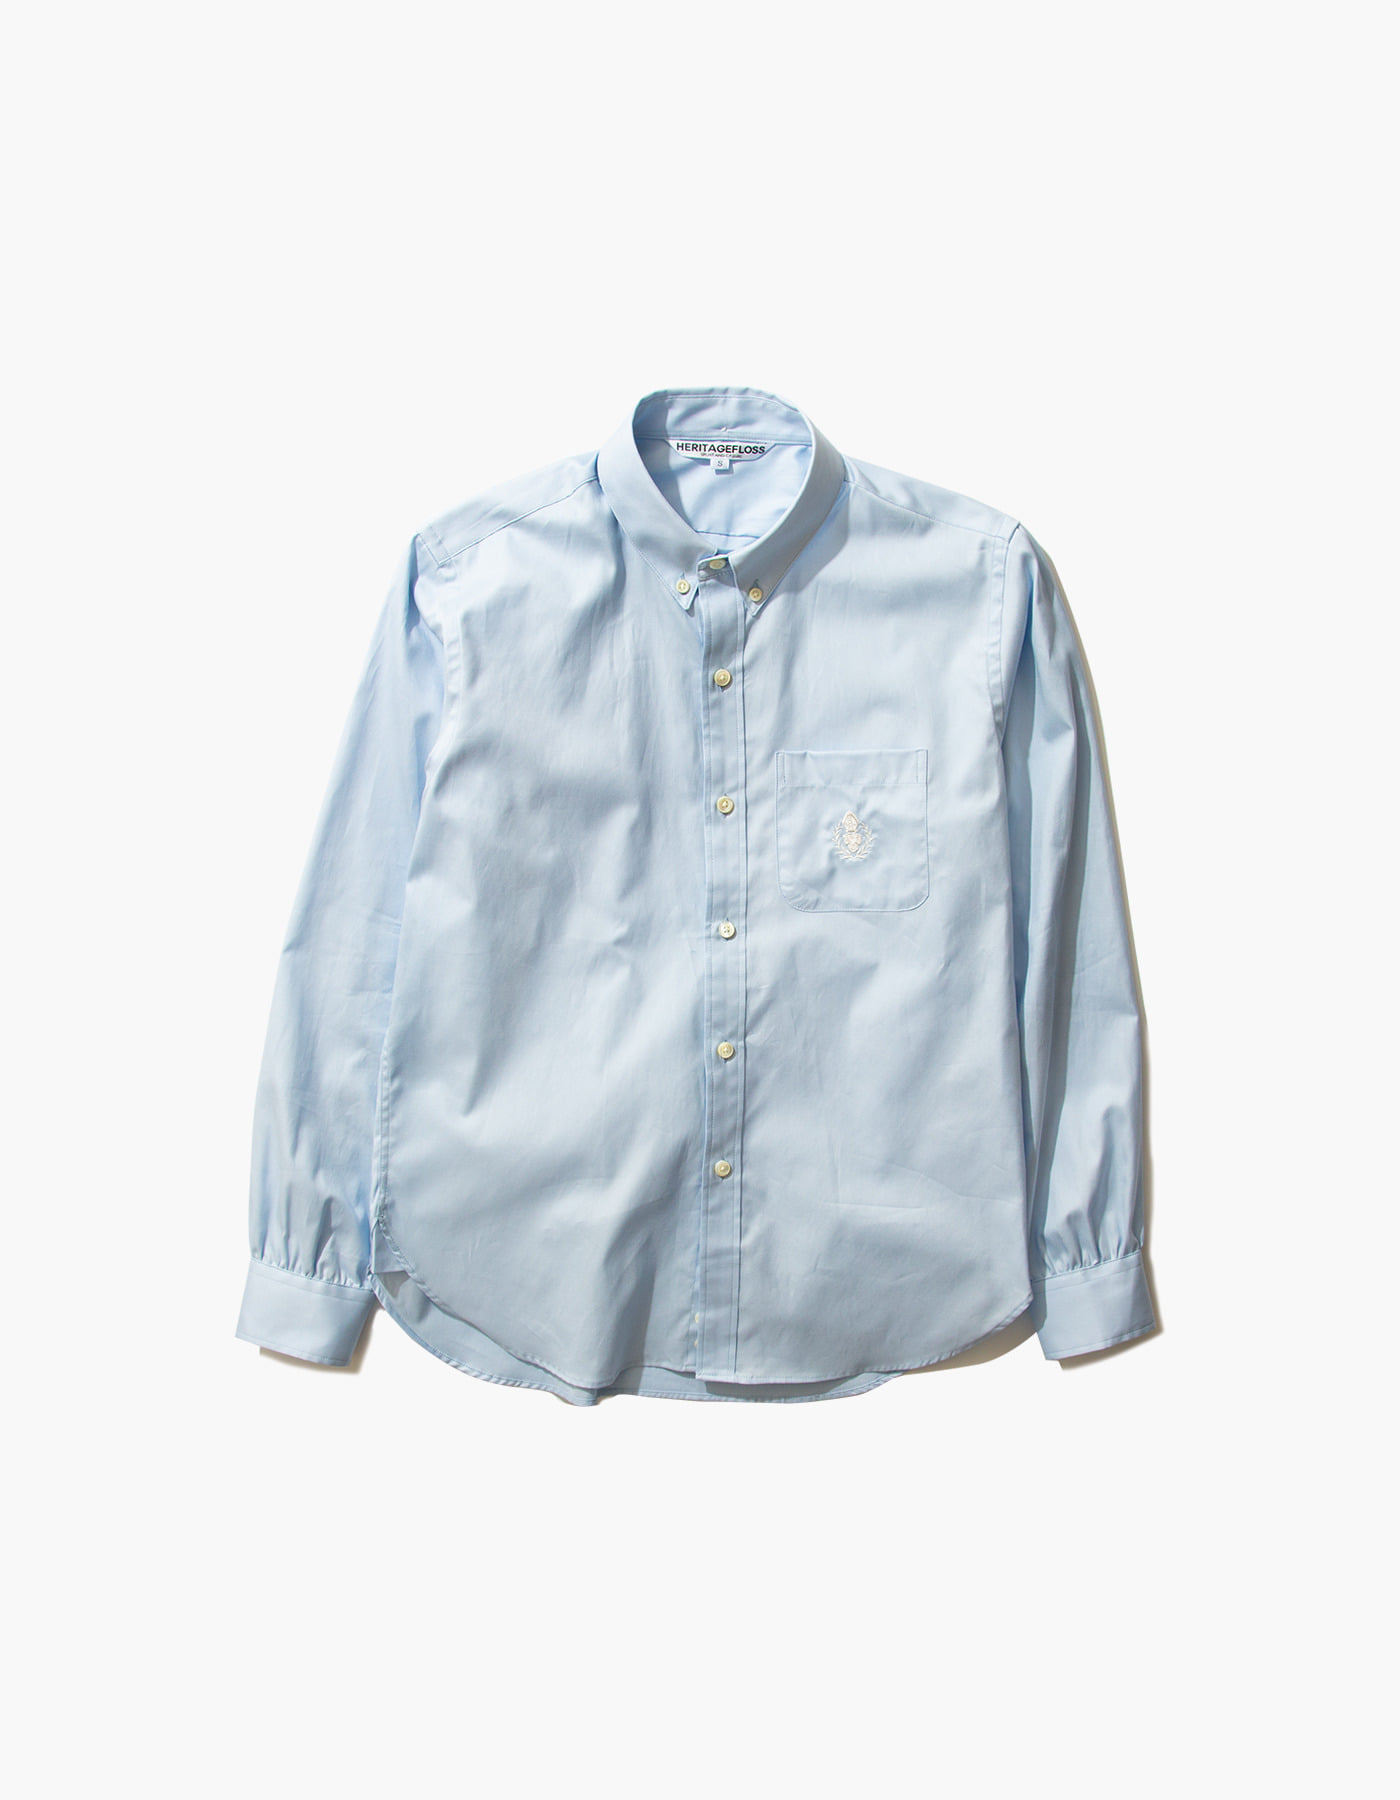 HFC COMBED OXFORD SHIRTS / SKY BLUE